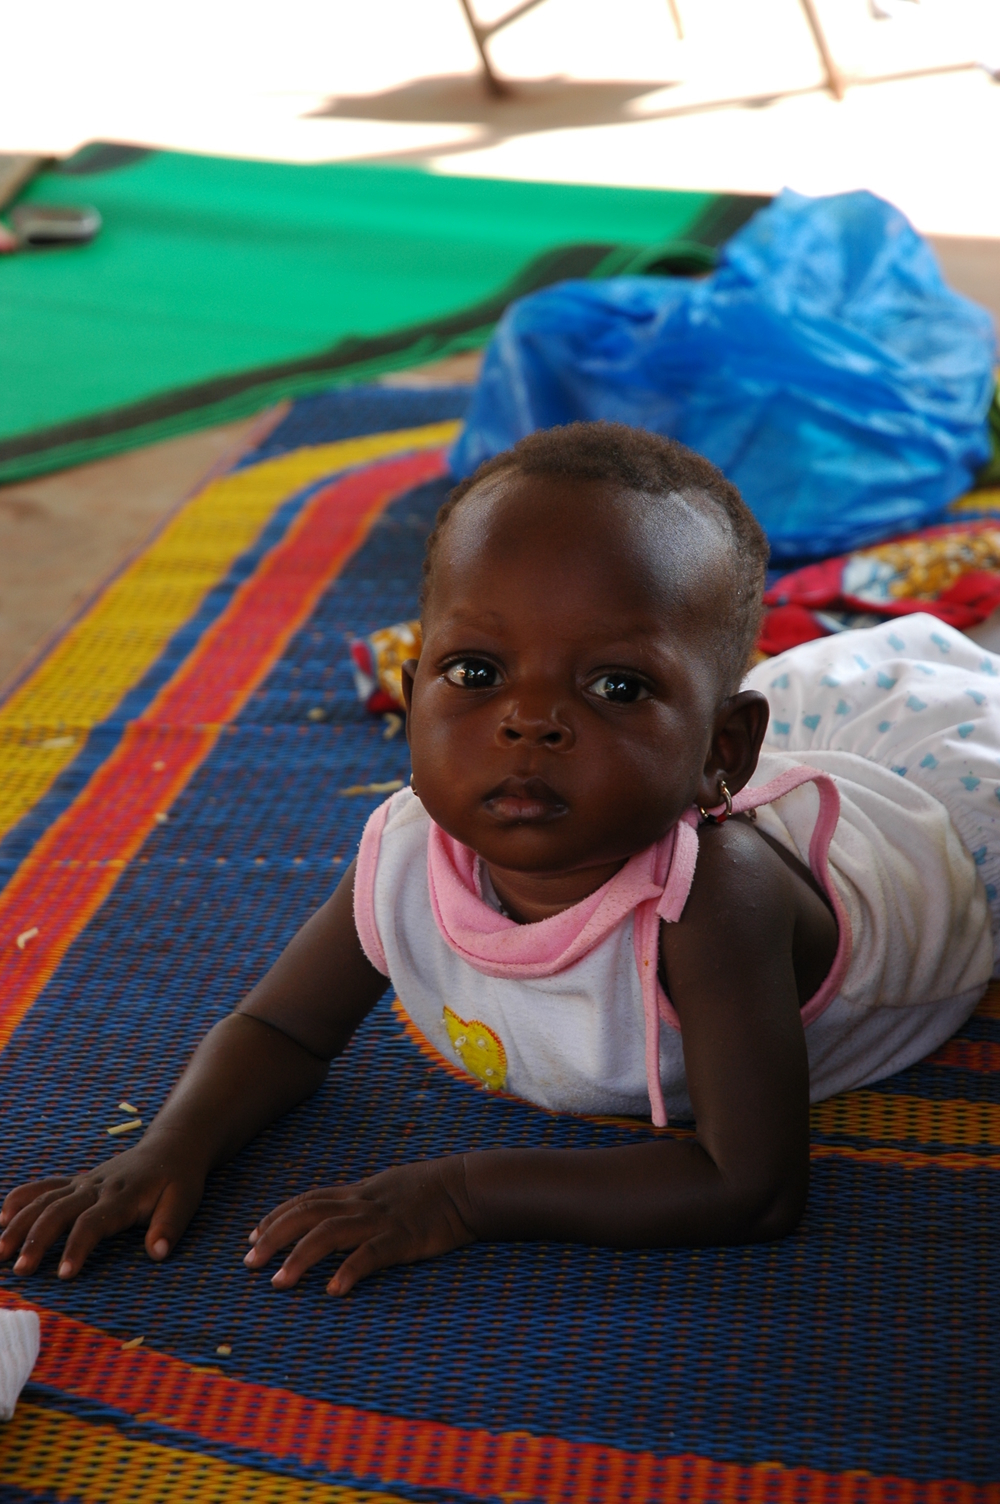 Baby treated for malnutrition at Ouahigouya regional hospital in northwestern Burkina Faso